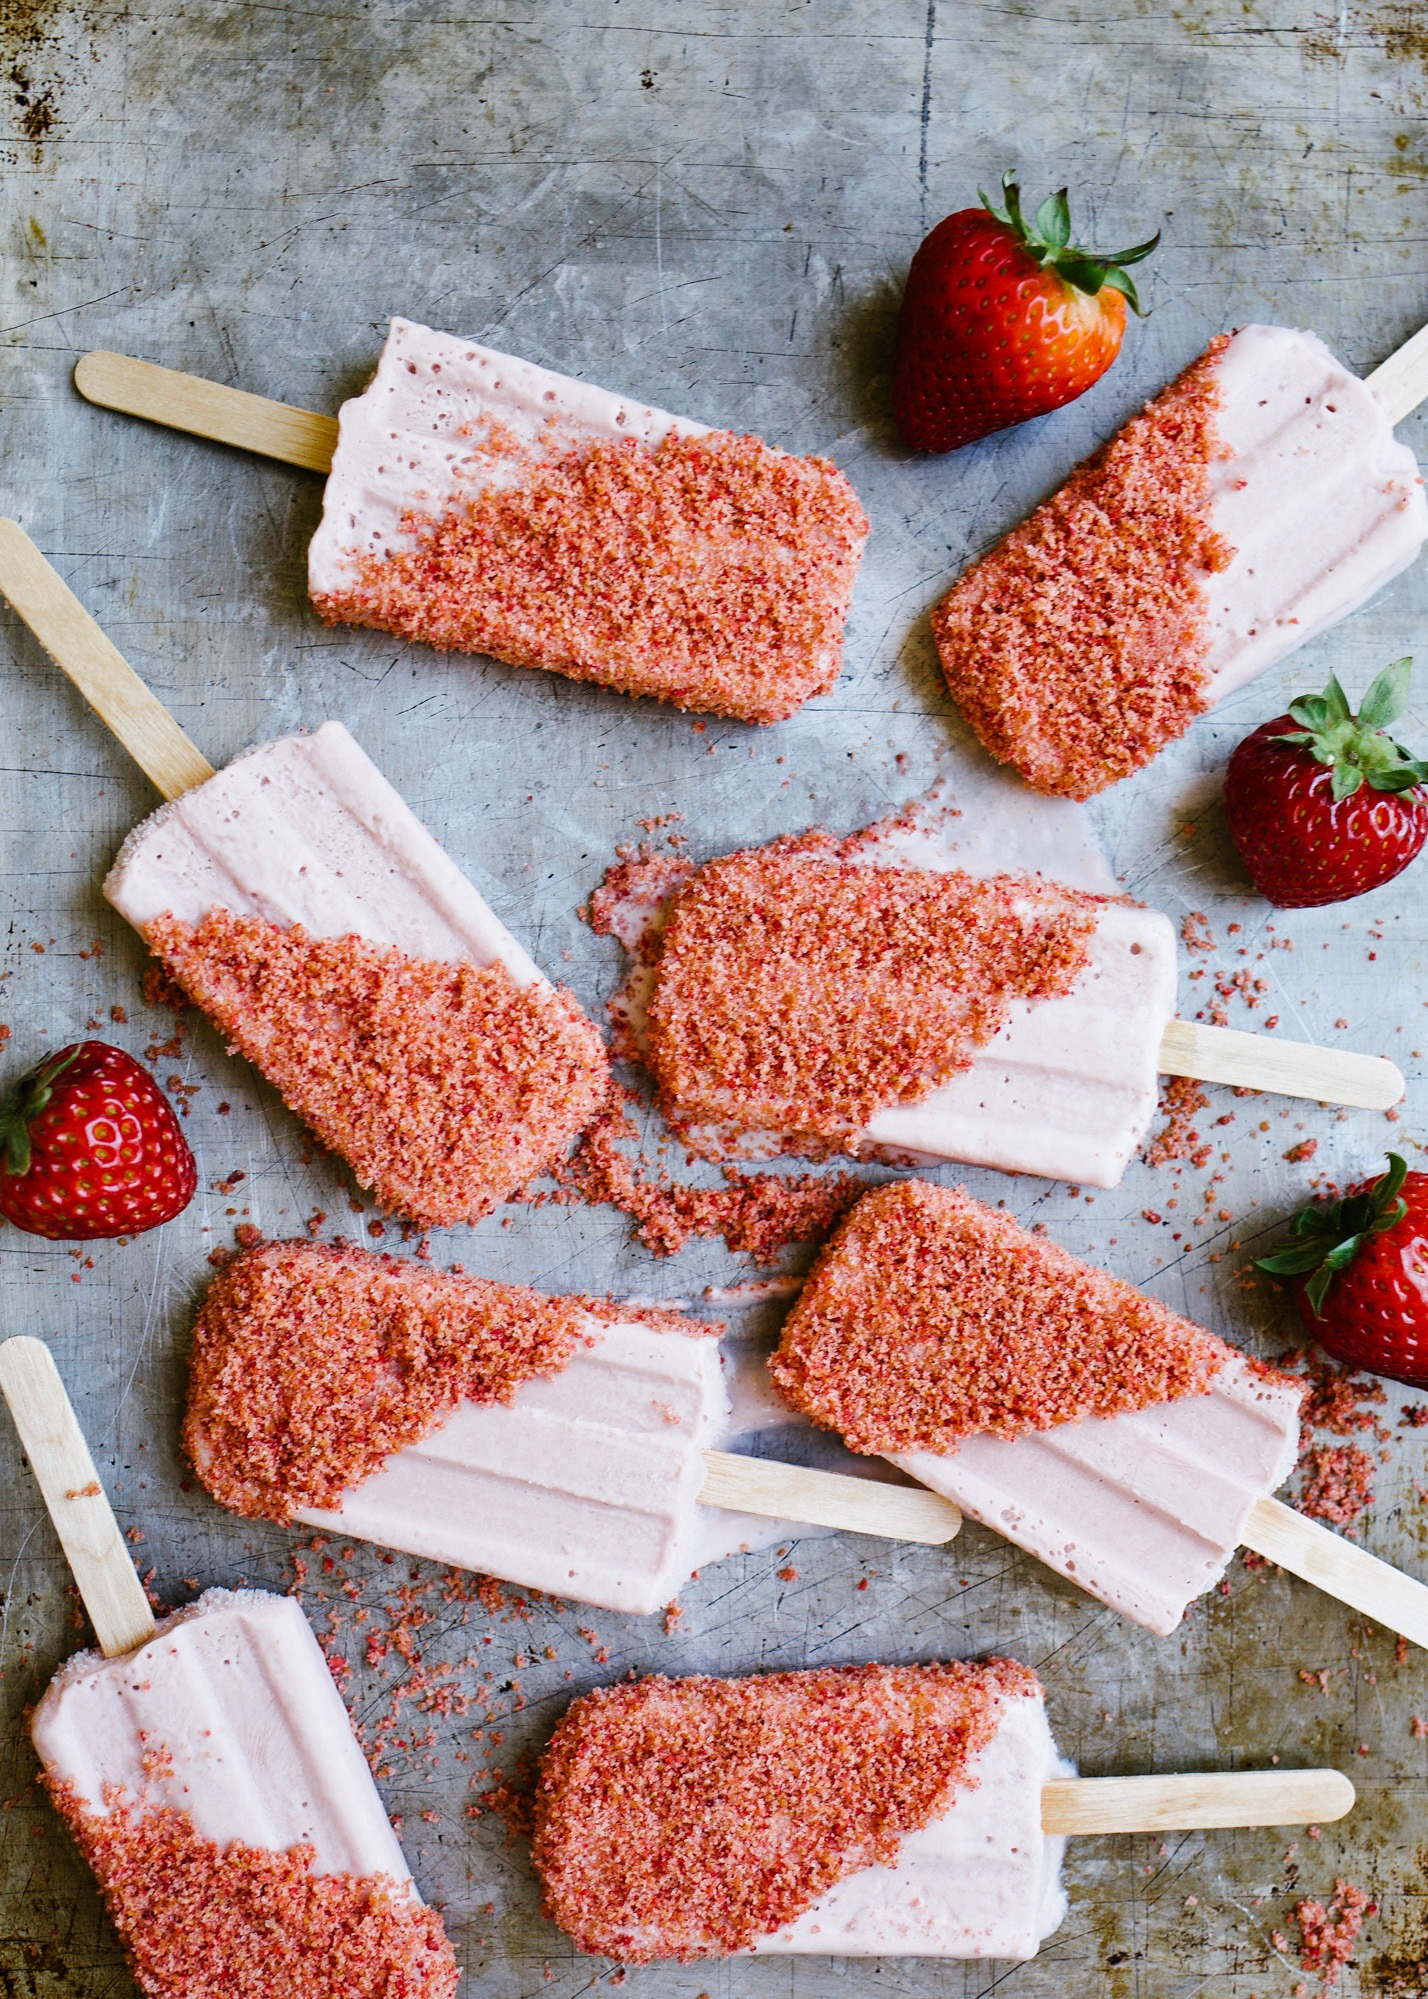 Strawberry Shortcake Popsicles by Wood and Spoon blog. These frozen treats were inspired by the classic novelty treats. A creamy fresh strawberry popsicle is made in a blender and dipped in a freeze-dried strawberry and vanilla cookie butter crumble. The end product is a refreshing and yummy dessert perfect for these summer days. Learn how simple the recipe is on thewoodandspoon.com .